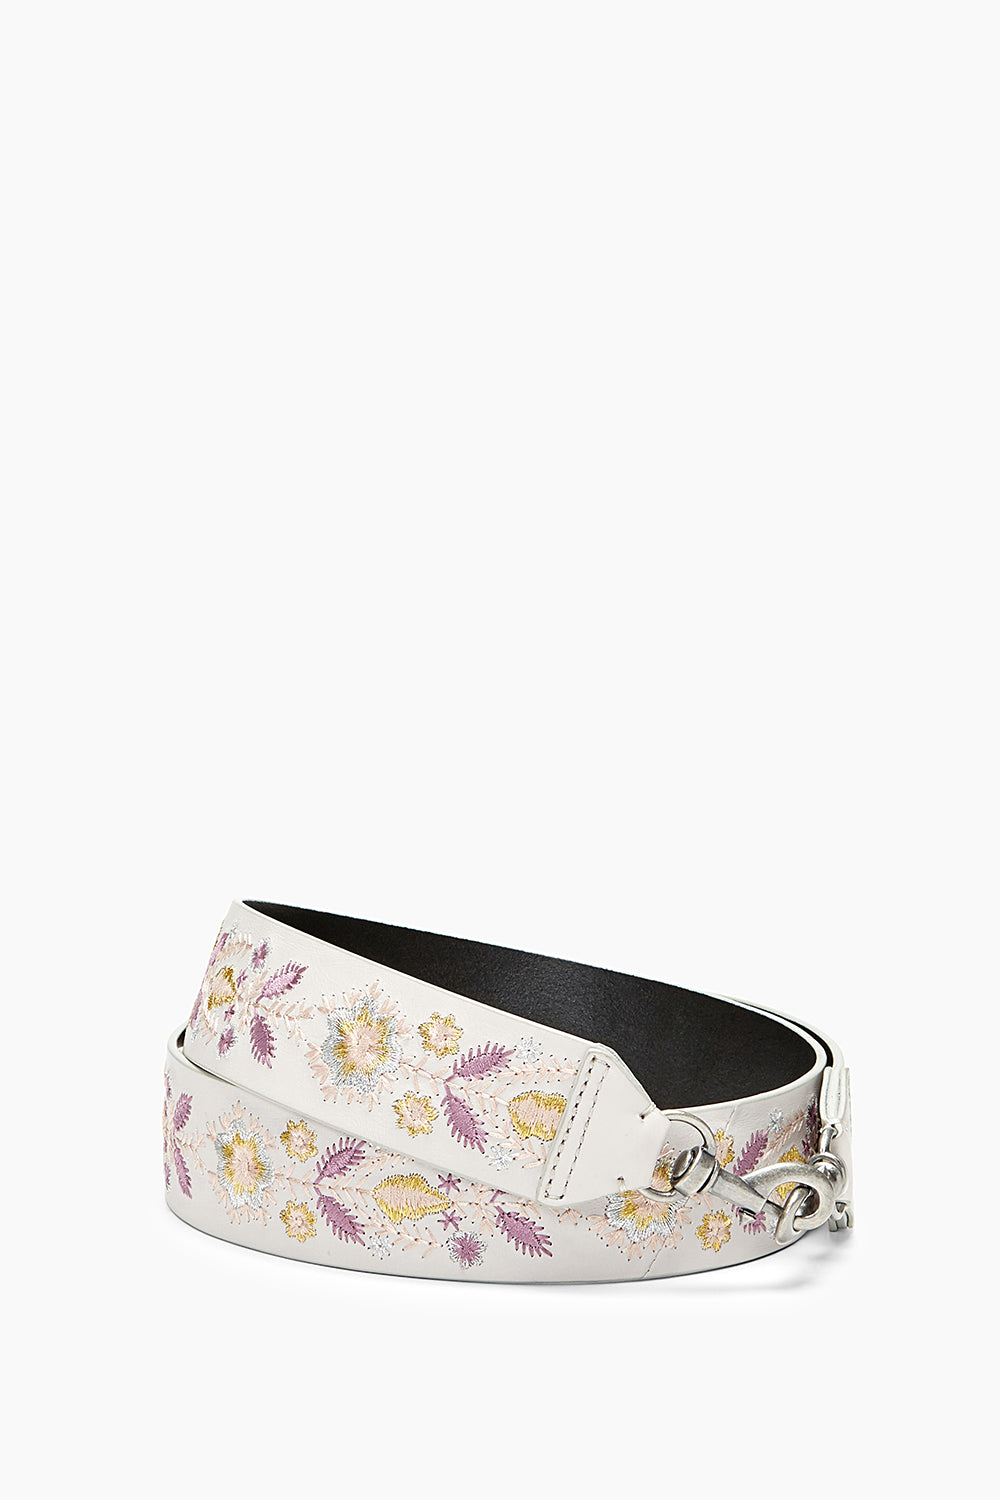 Metallic Embroidery Floral Guitar Strap